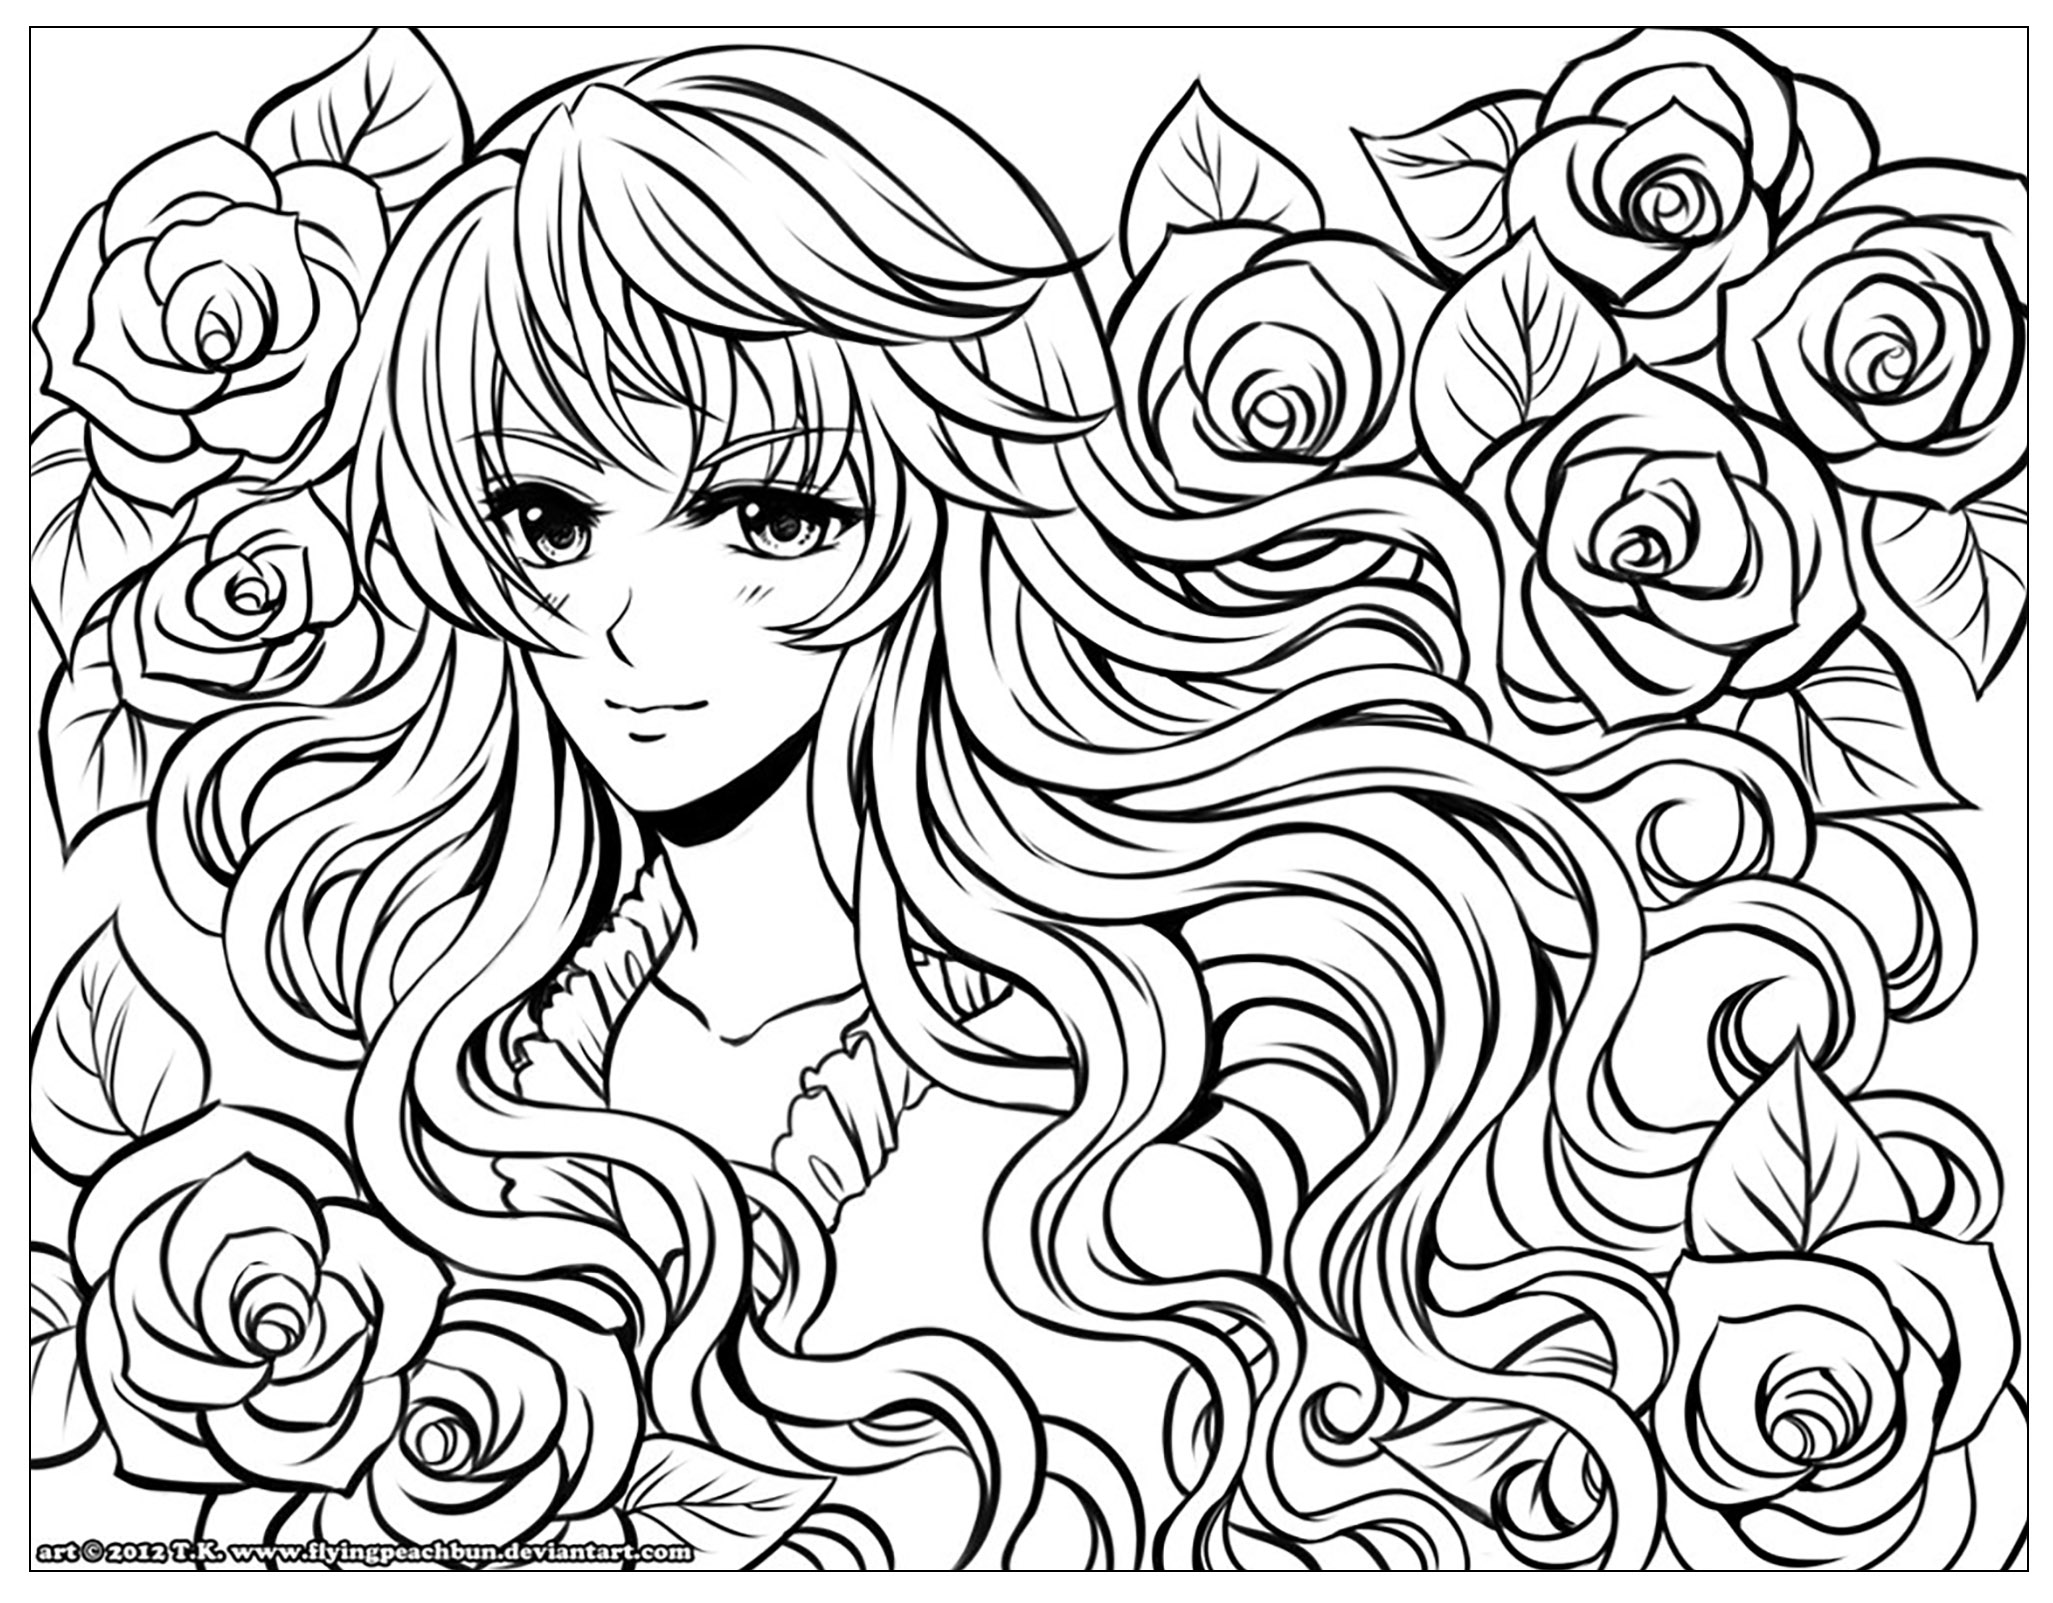 Manga Girl with flowers in her hair